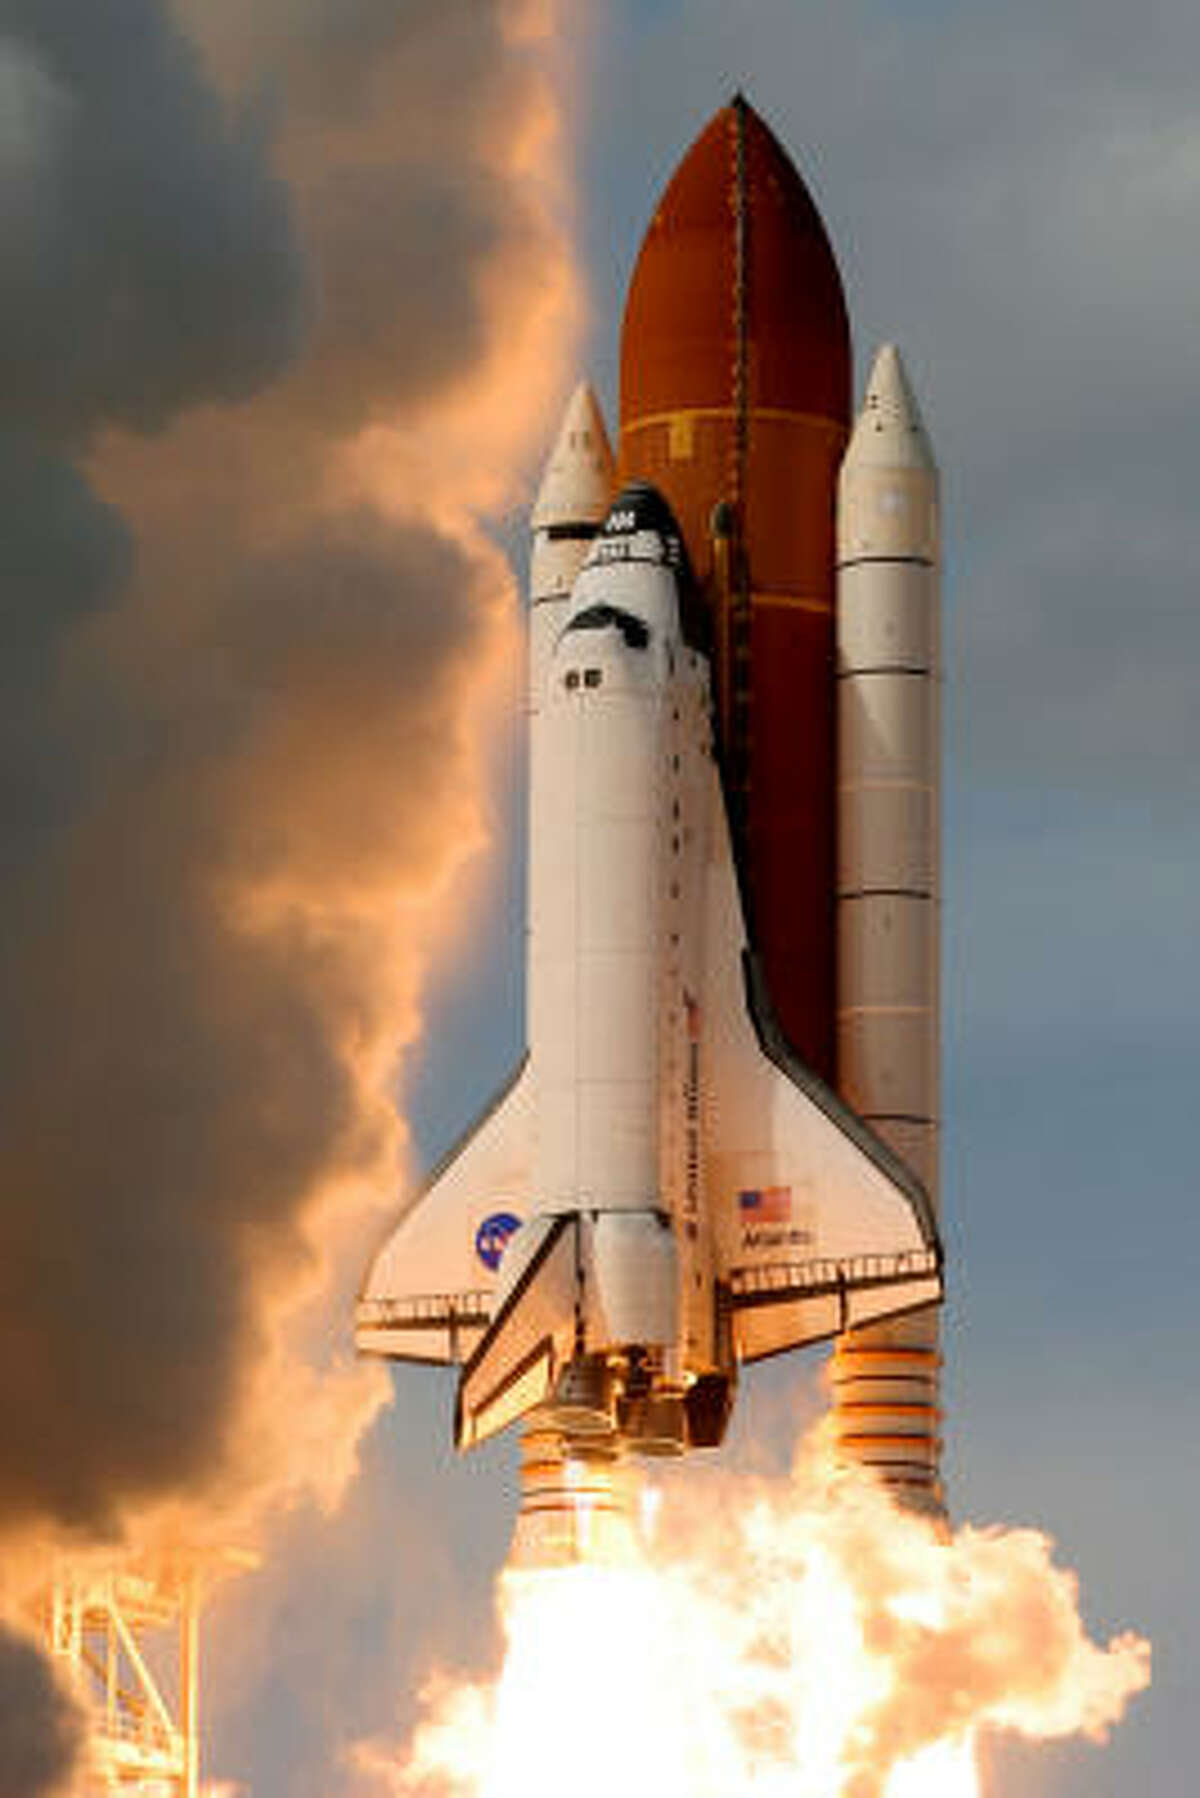 Space Shuttle Atlantis lifts off from launch pad 39-A at the Kennedy Space Center in Cape Canaveral, Florida. Atlantis is scheduled for a 11-day mission to the International Space Station.